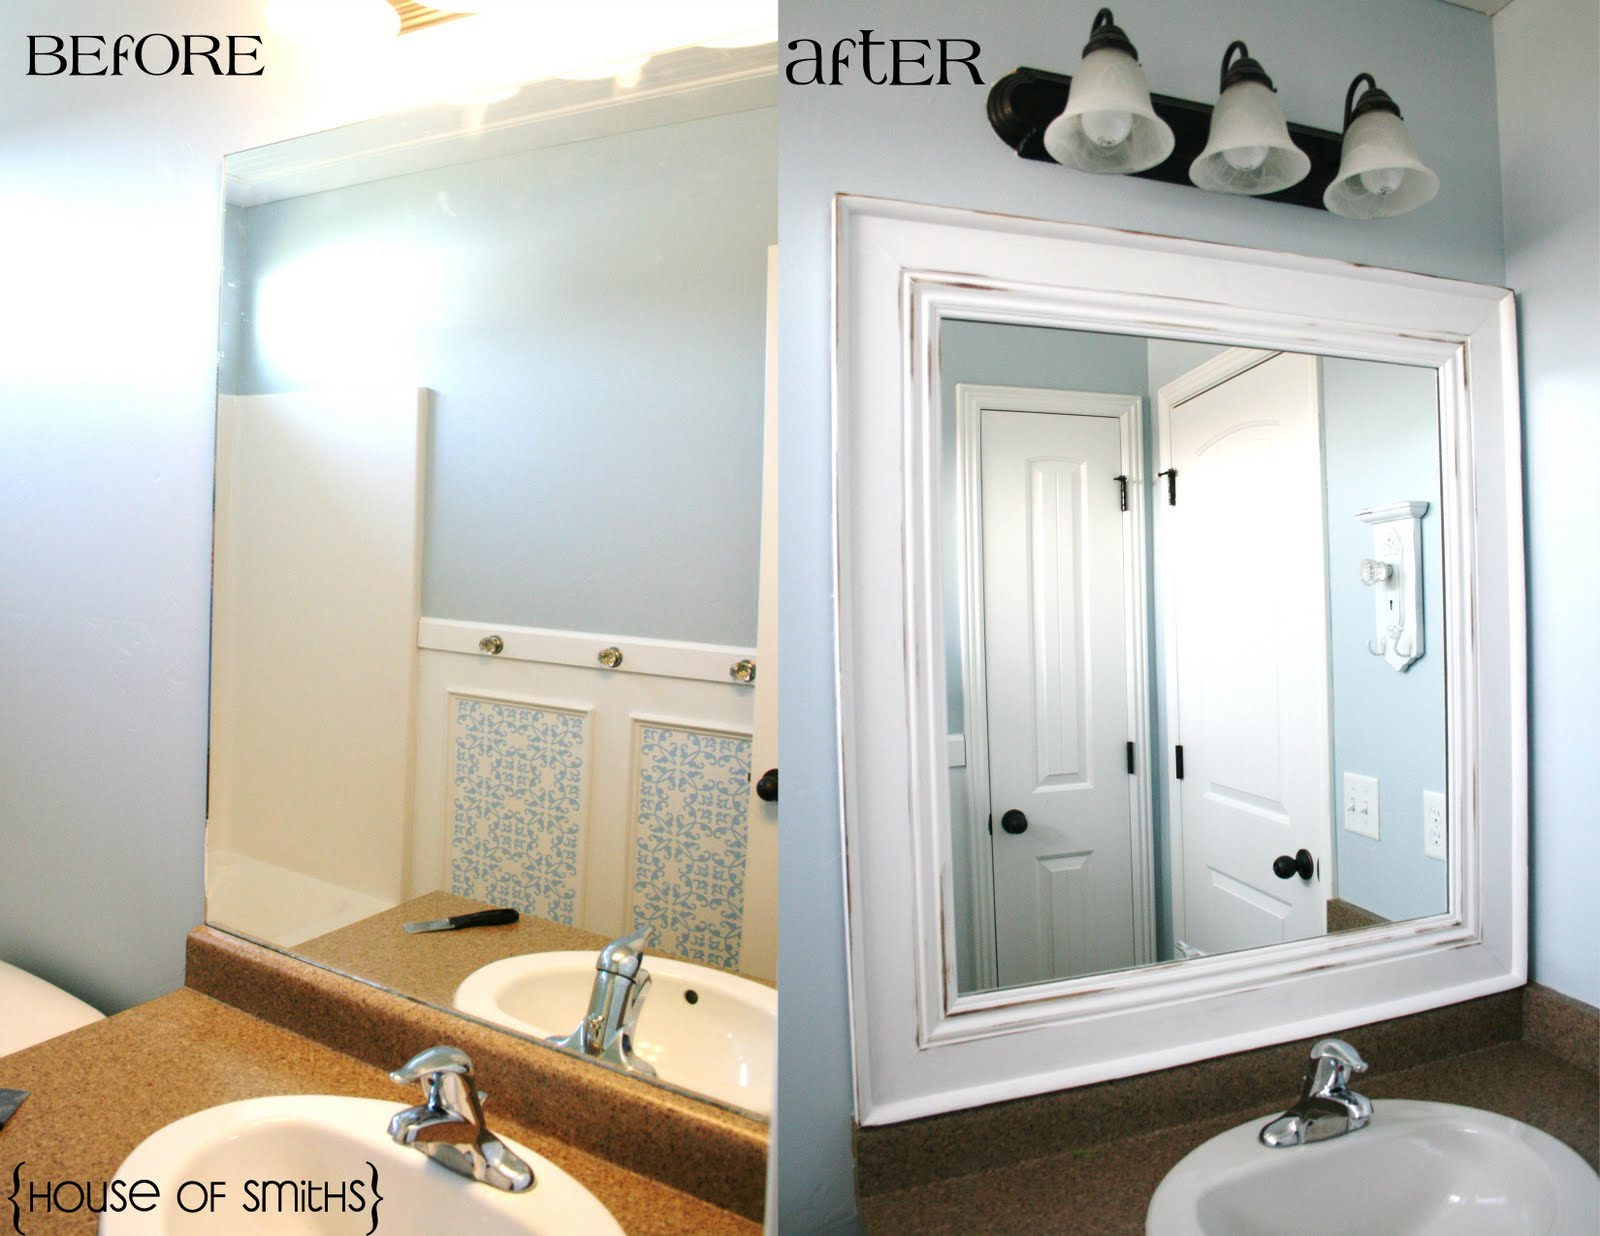 Diy framed mirror tutorial for How to frame mirror in bathroom